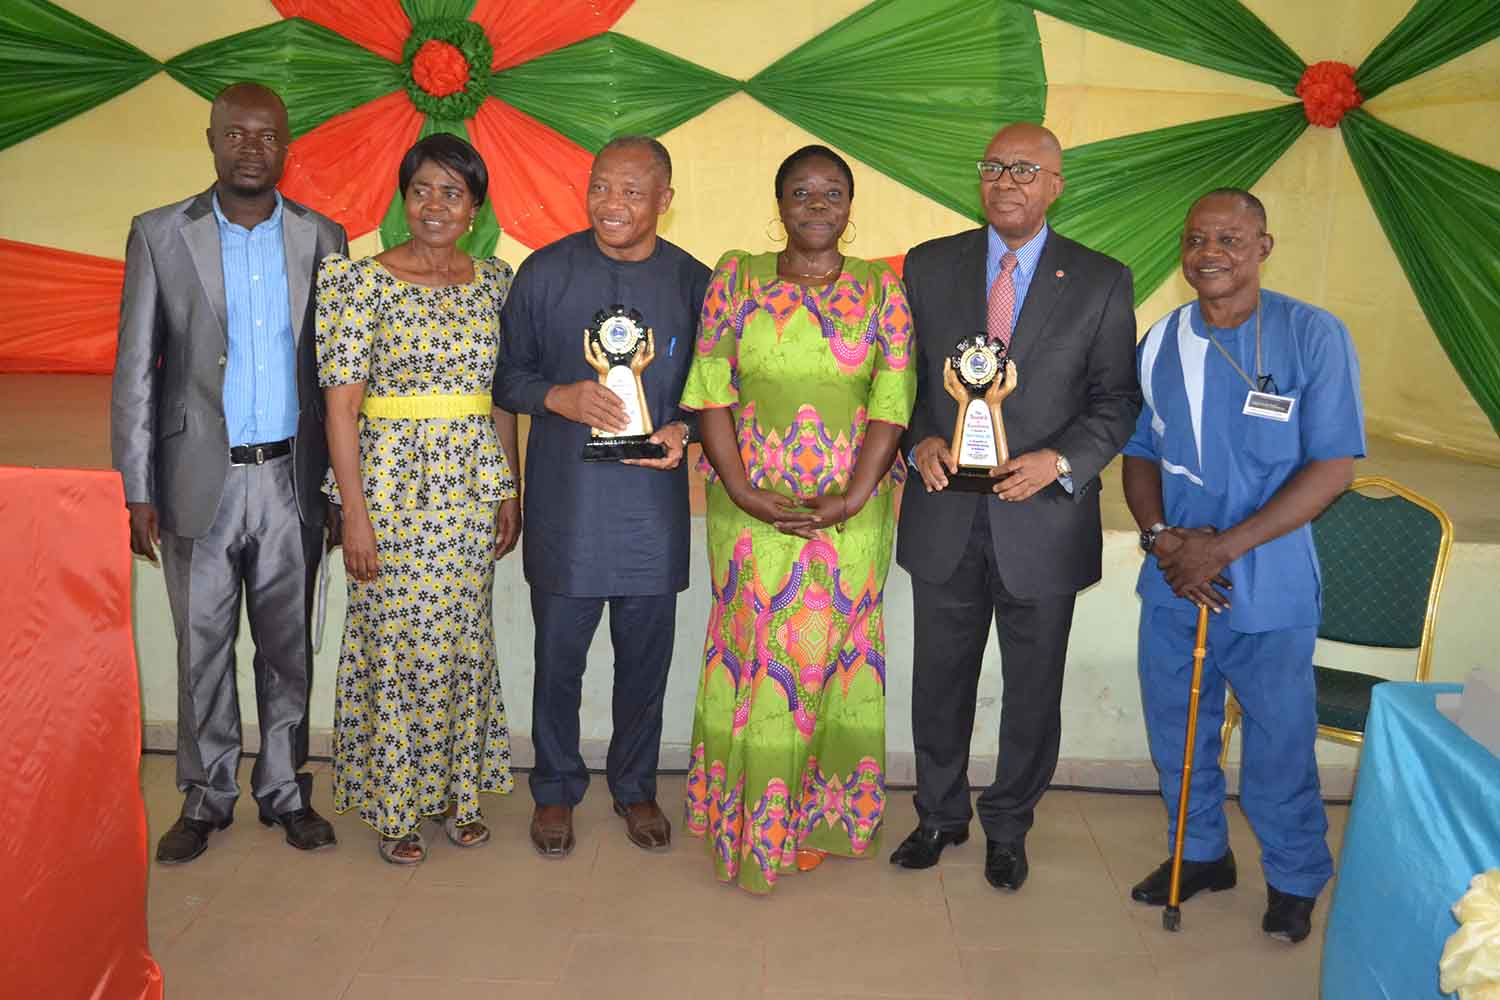 Awardees and some members of the Faculty. Left to right: Dr Arua O.Omaka (Chair of the Local Organizing Committee), Prof Akachi Ezeigbo, Prof Chima Korieh, Prof G.M.T Emezue, Chief Emmanuel Nnorom and Prof Micheal Onuu